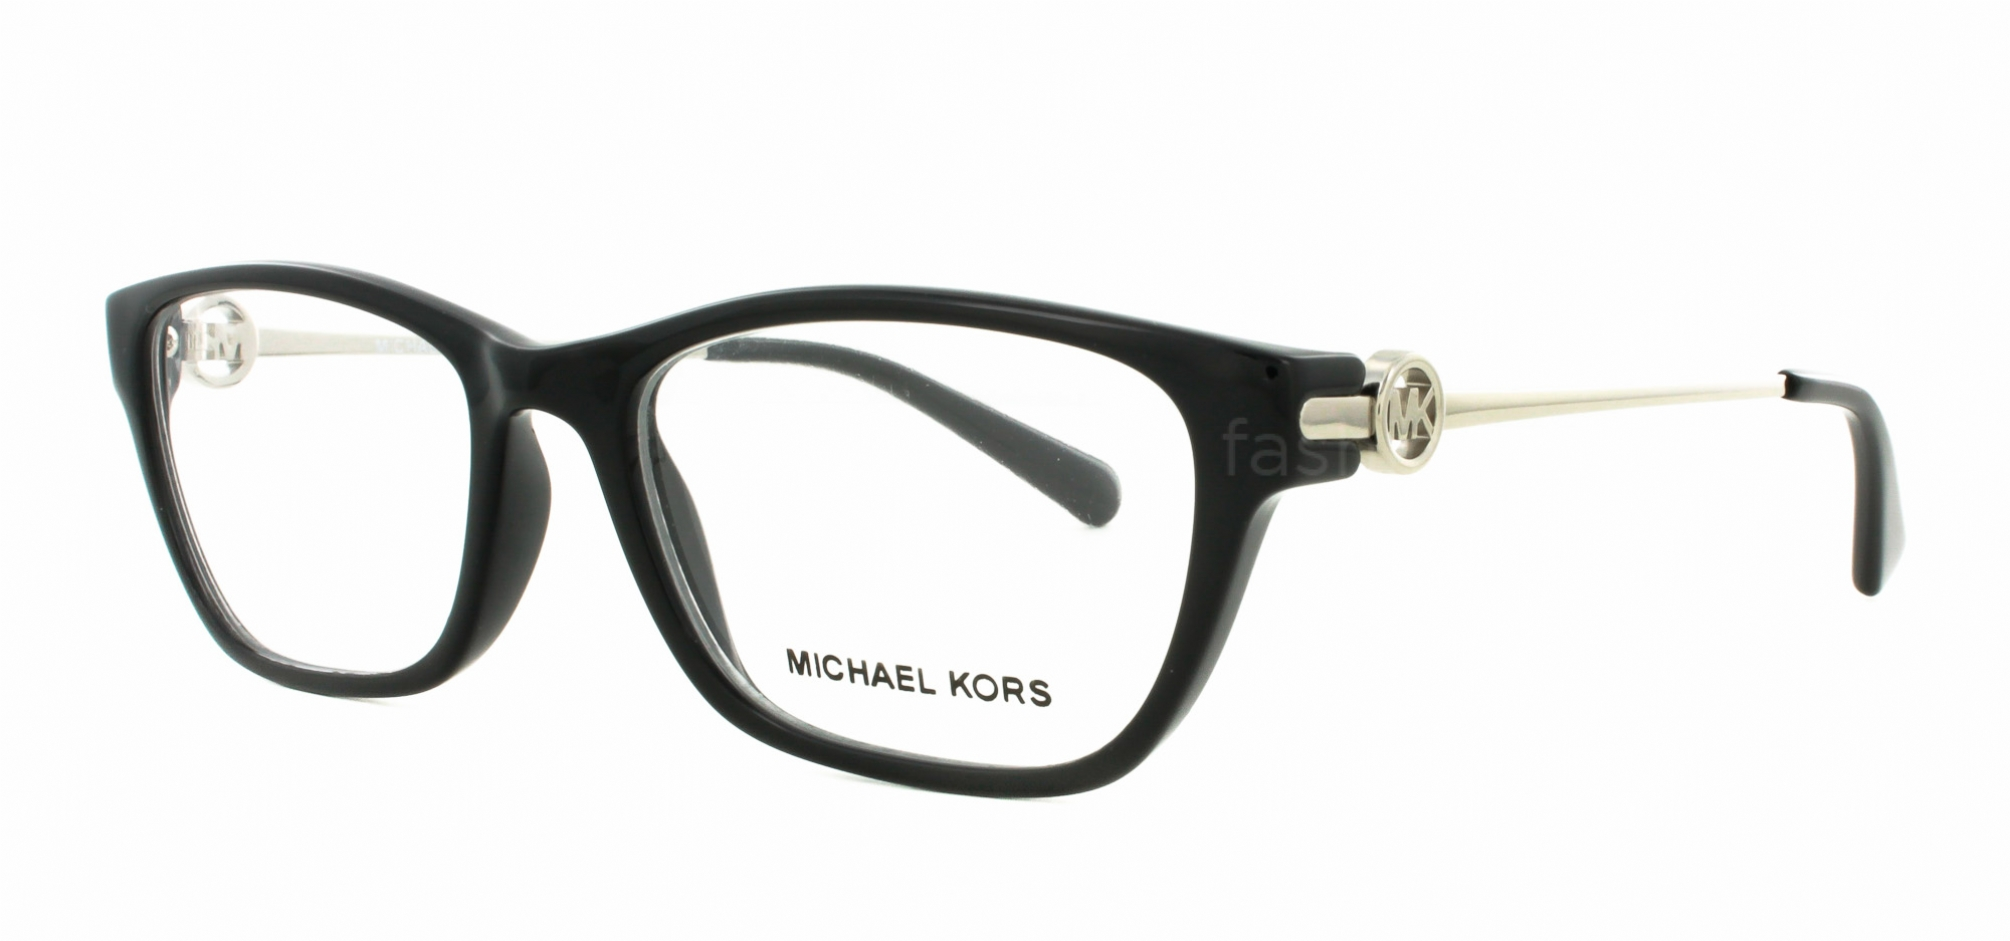 MICHAEL KORS DEER VALLEY 8005